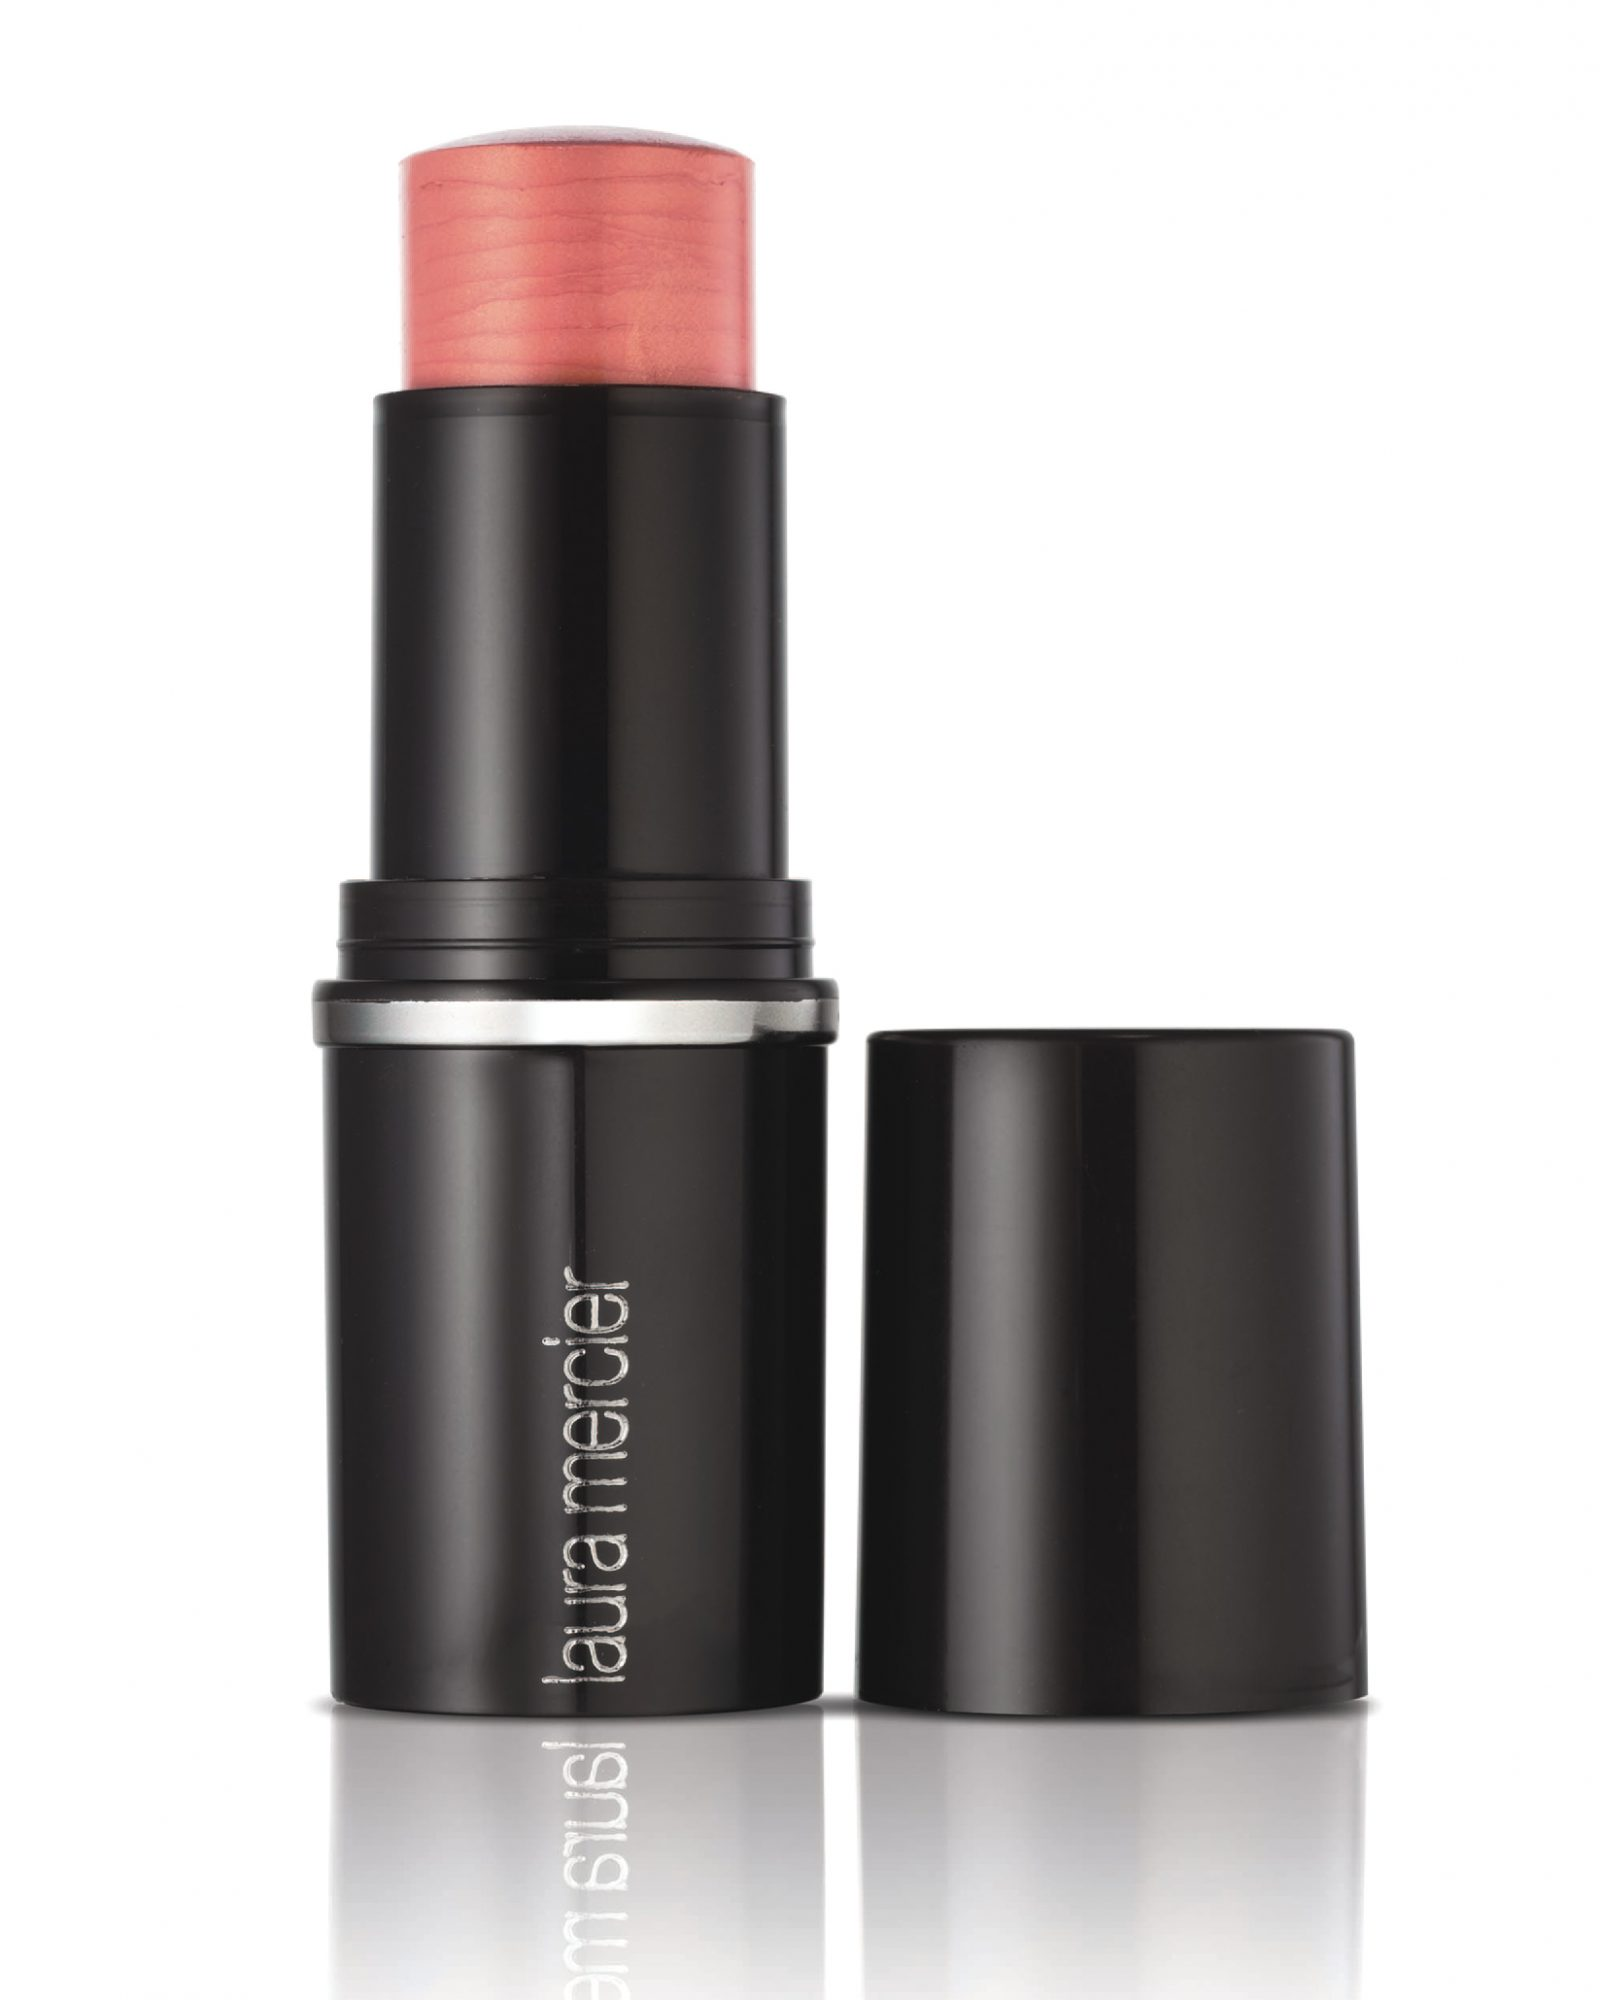 lauramercier-bonnemine-shadepeach-0814.jpg